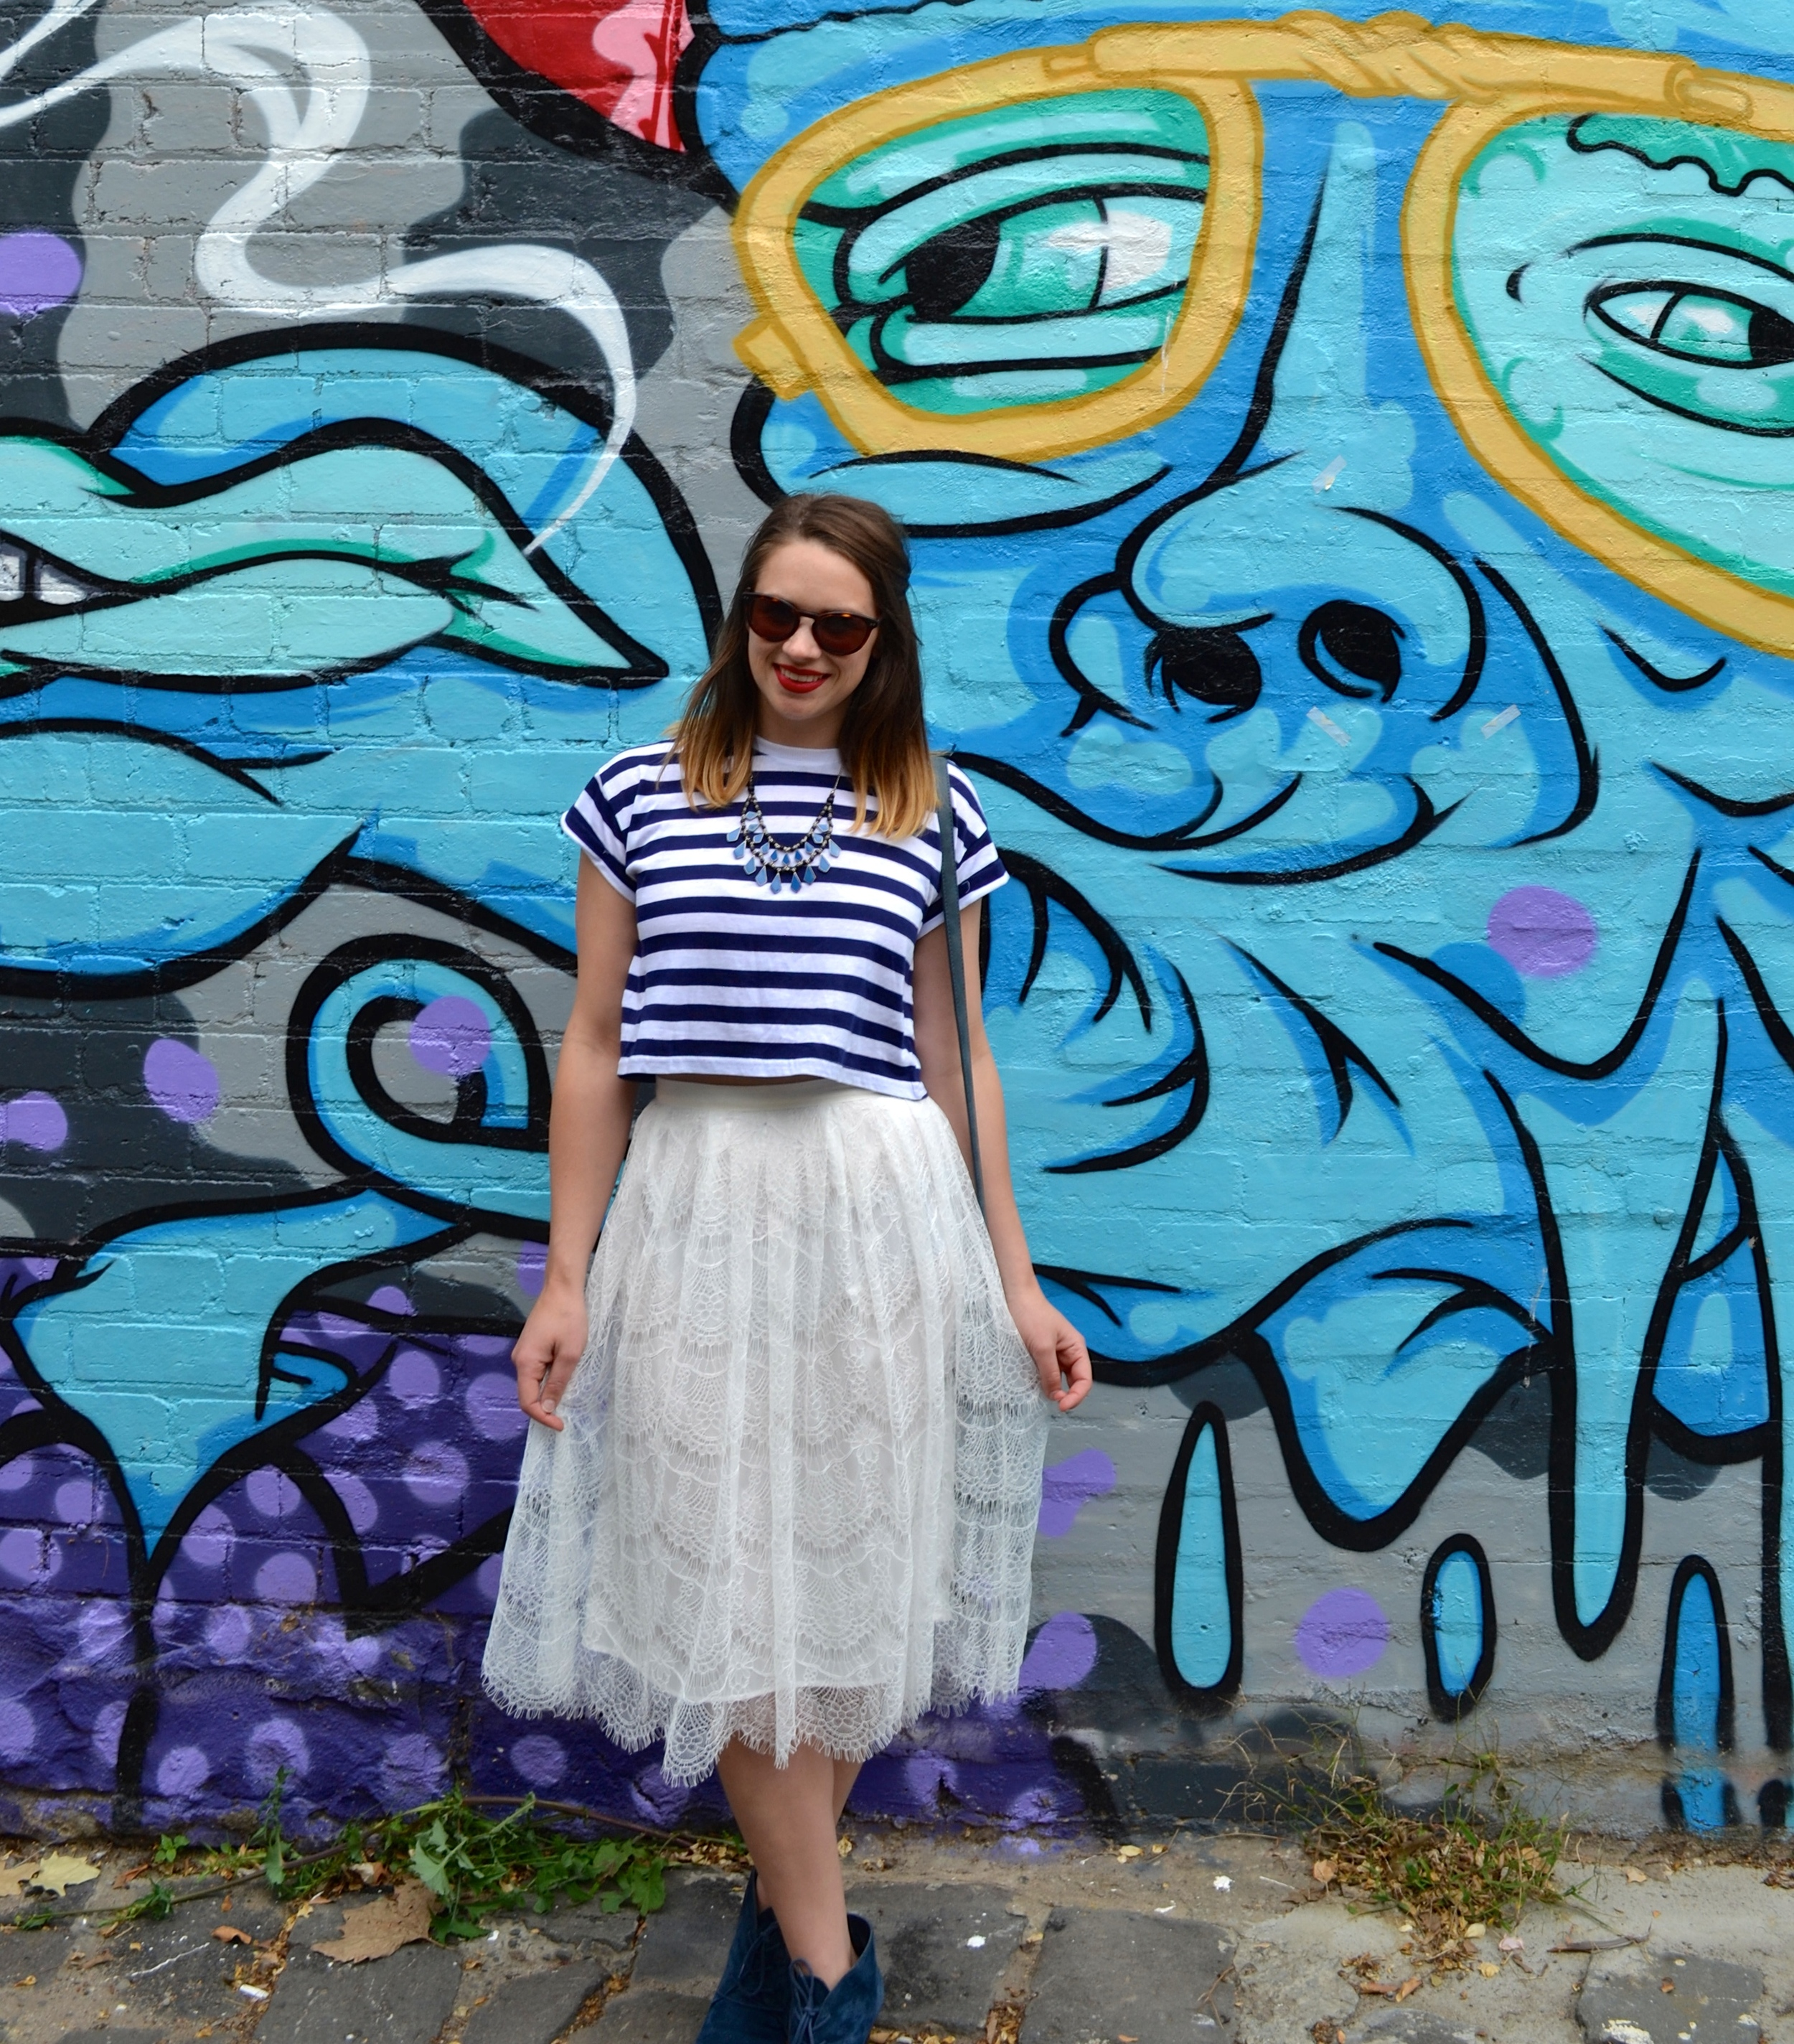 lace-midi-skirt-blue-stripped-top-blue-chain-necklace-graffiti-melbourne